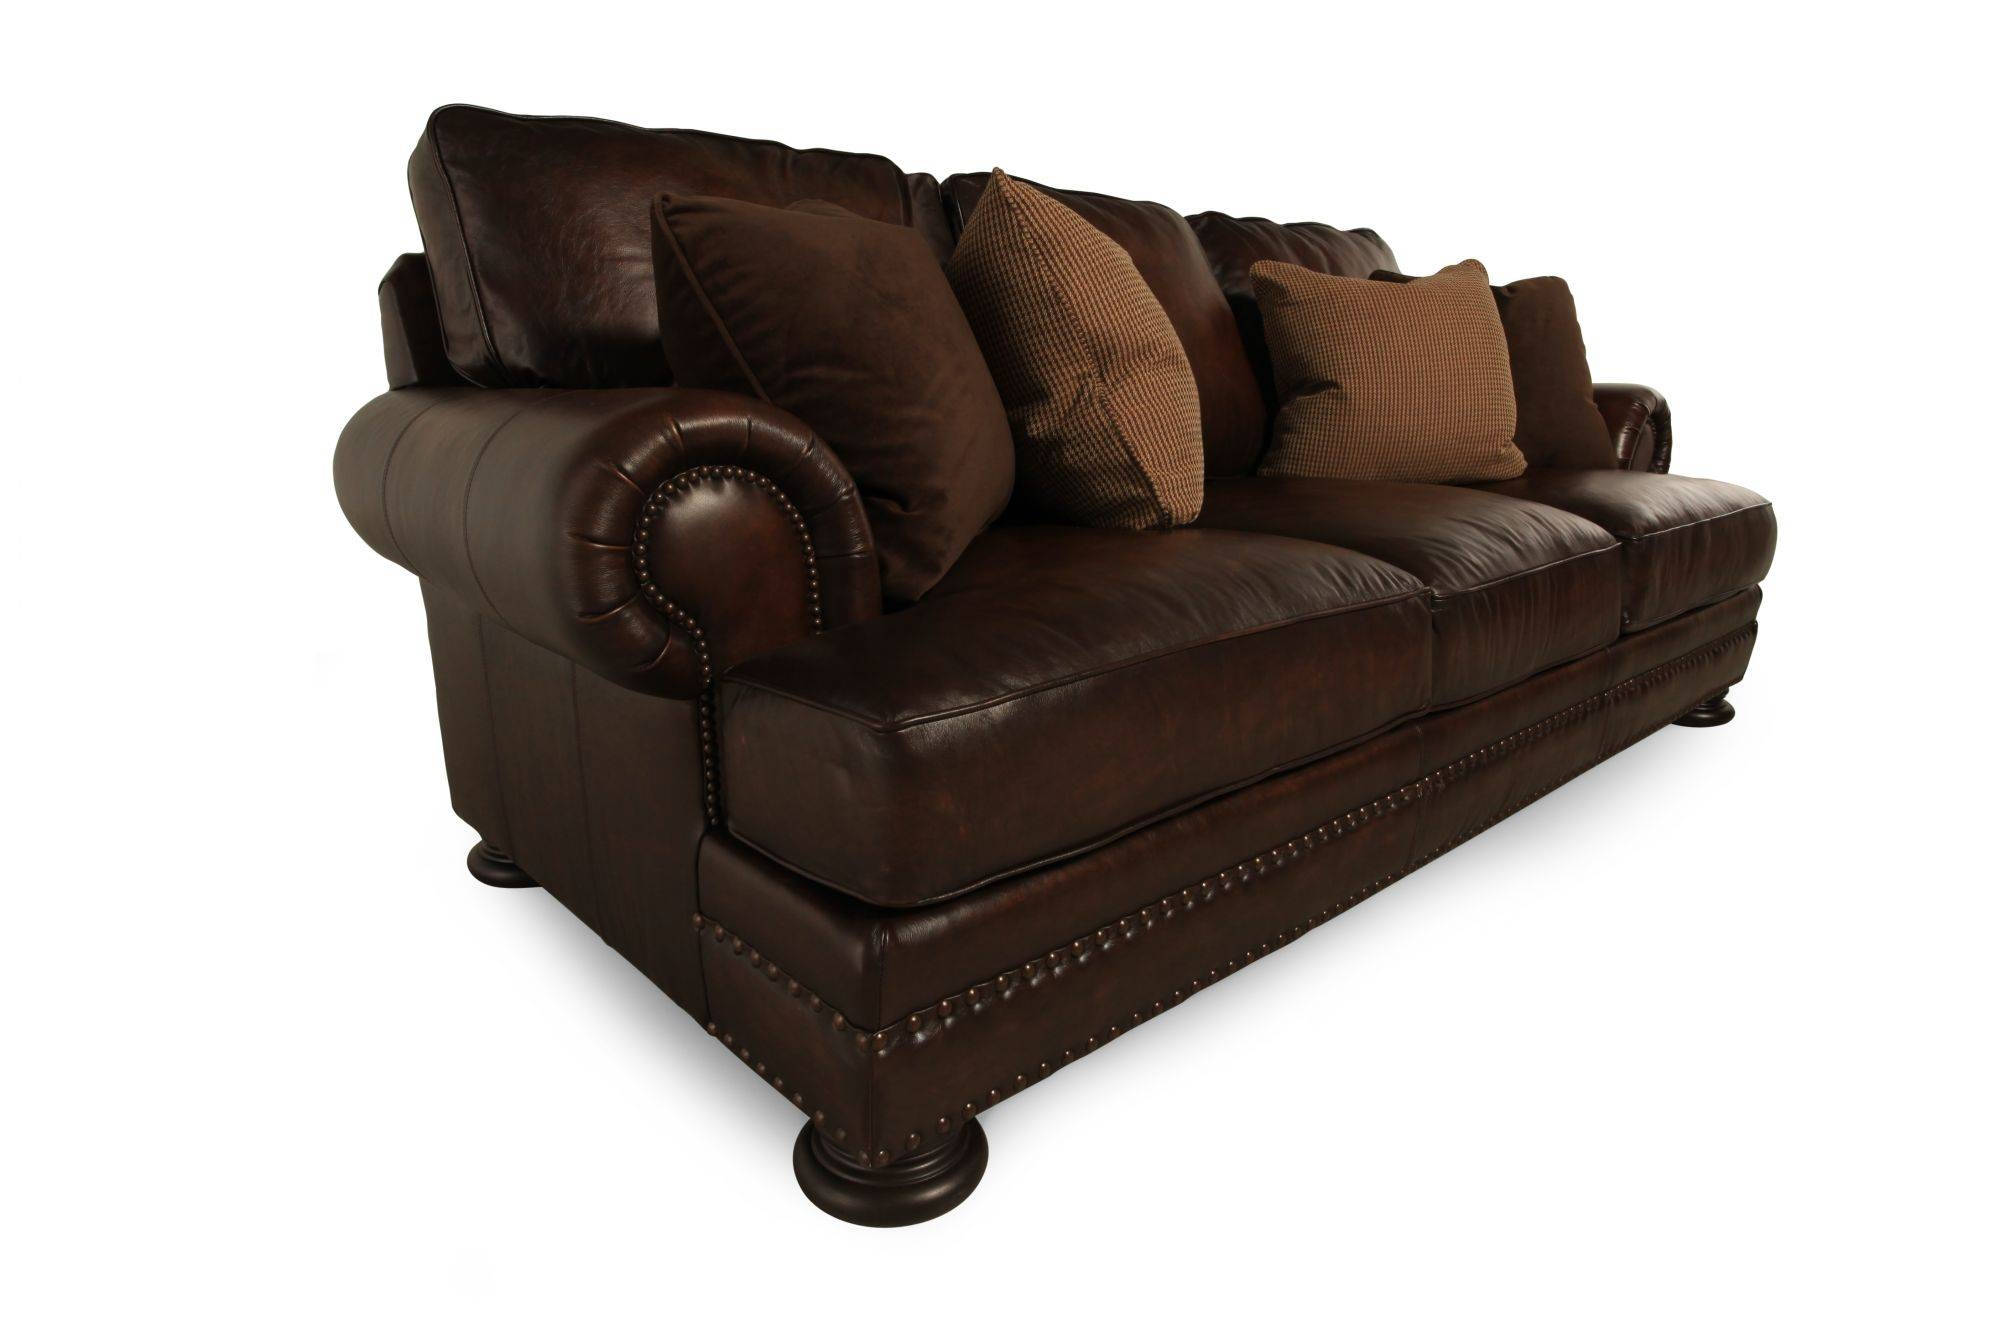 19 Foster Leather Sofa | Carehouse with regard to Foster Leather Sofas (Image 4 of 15)